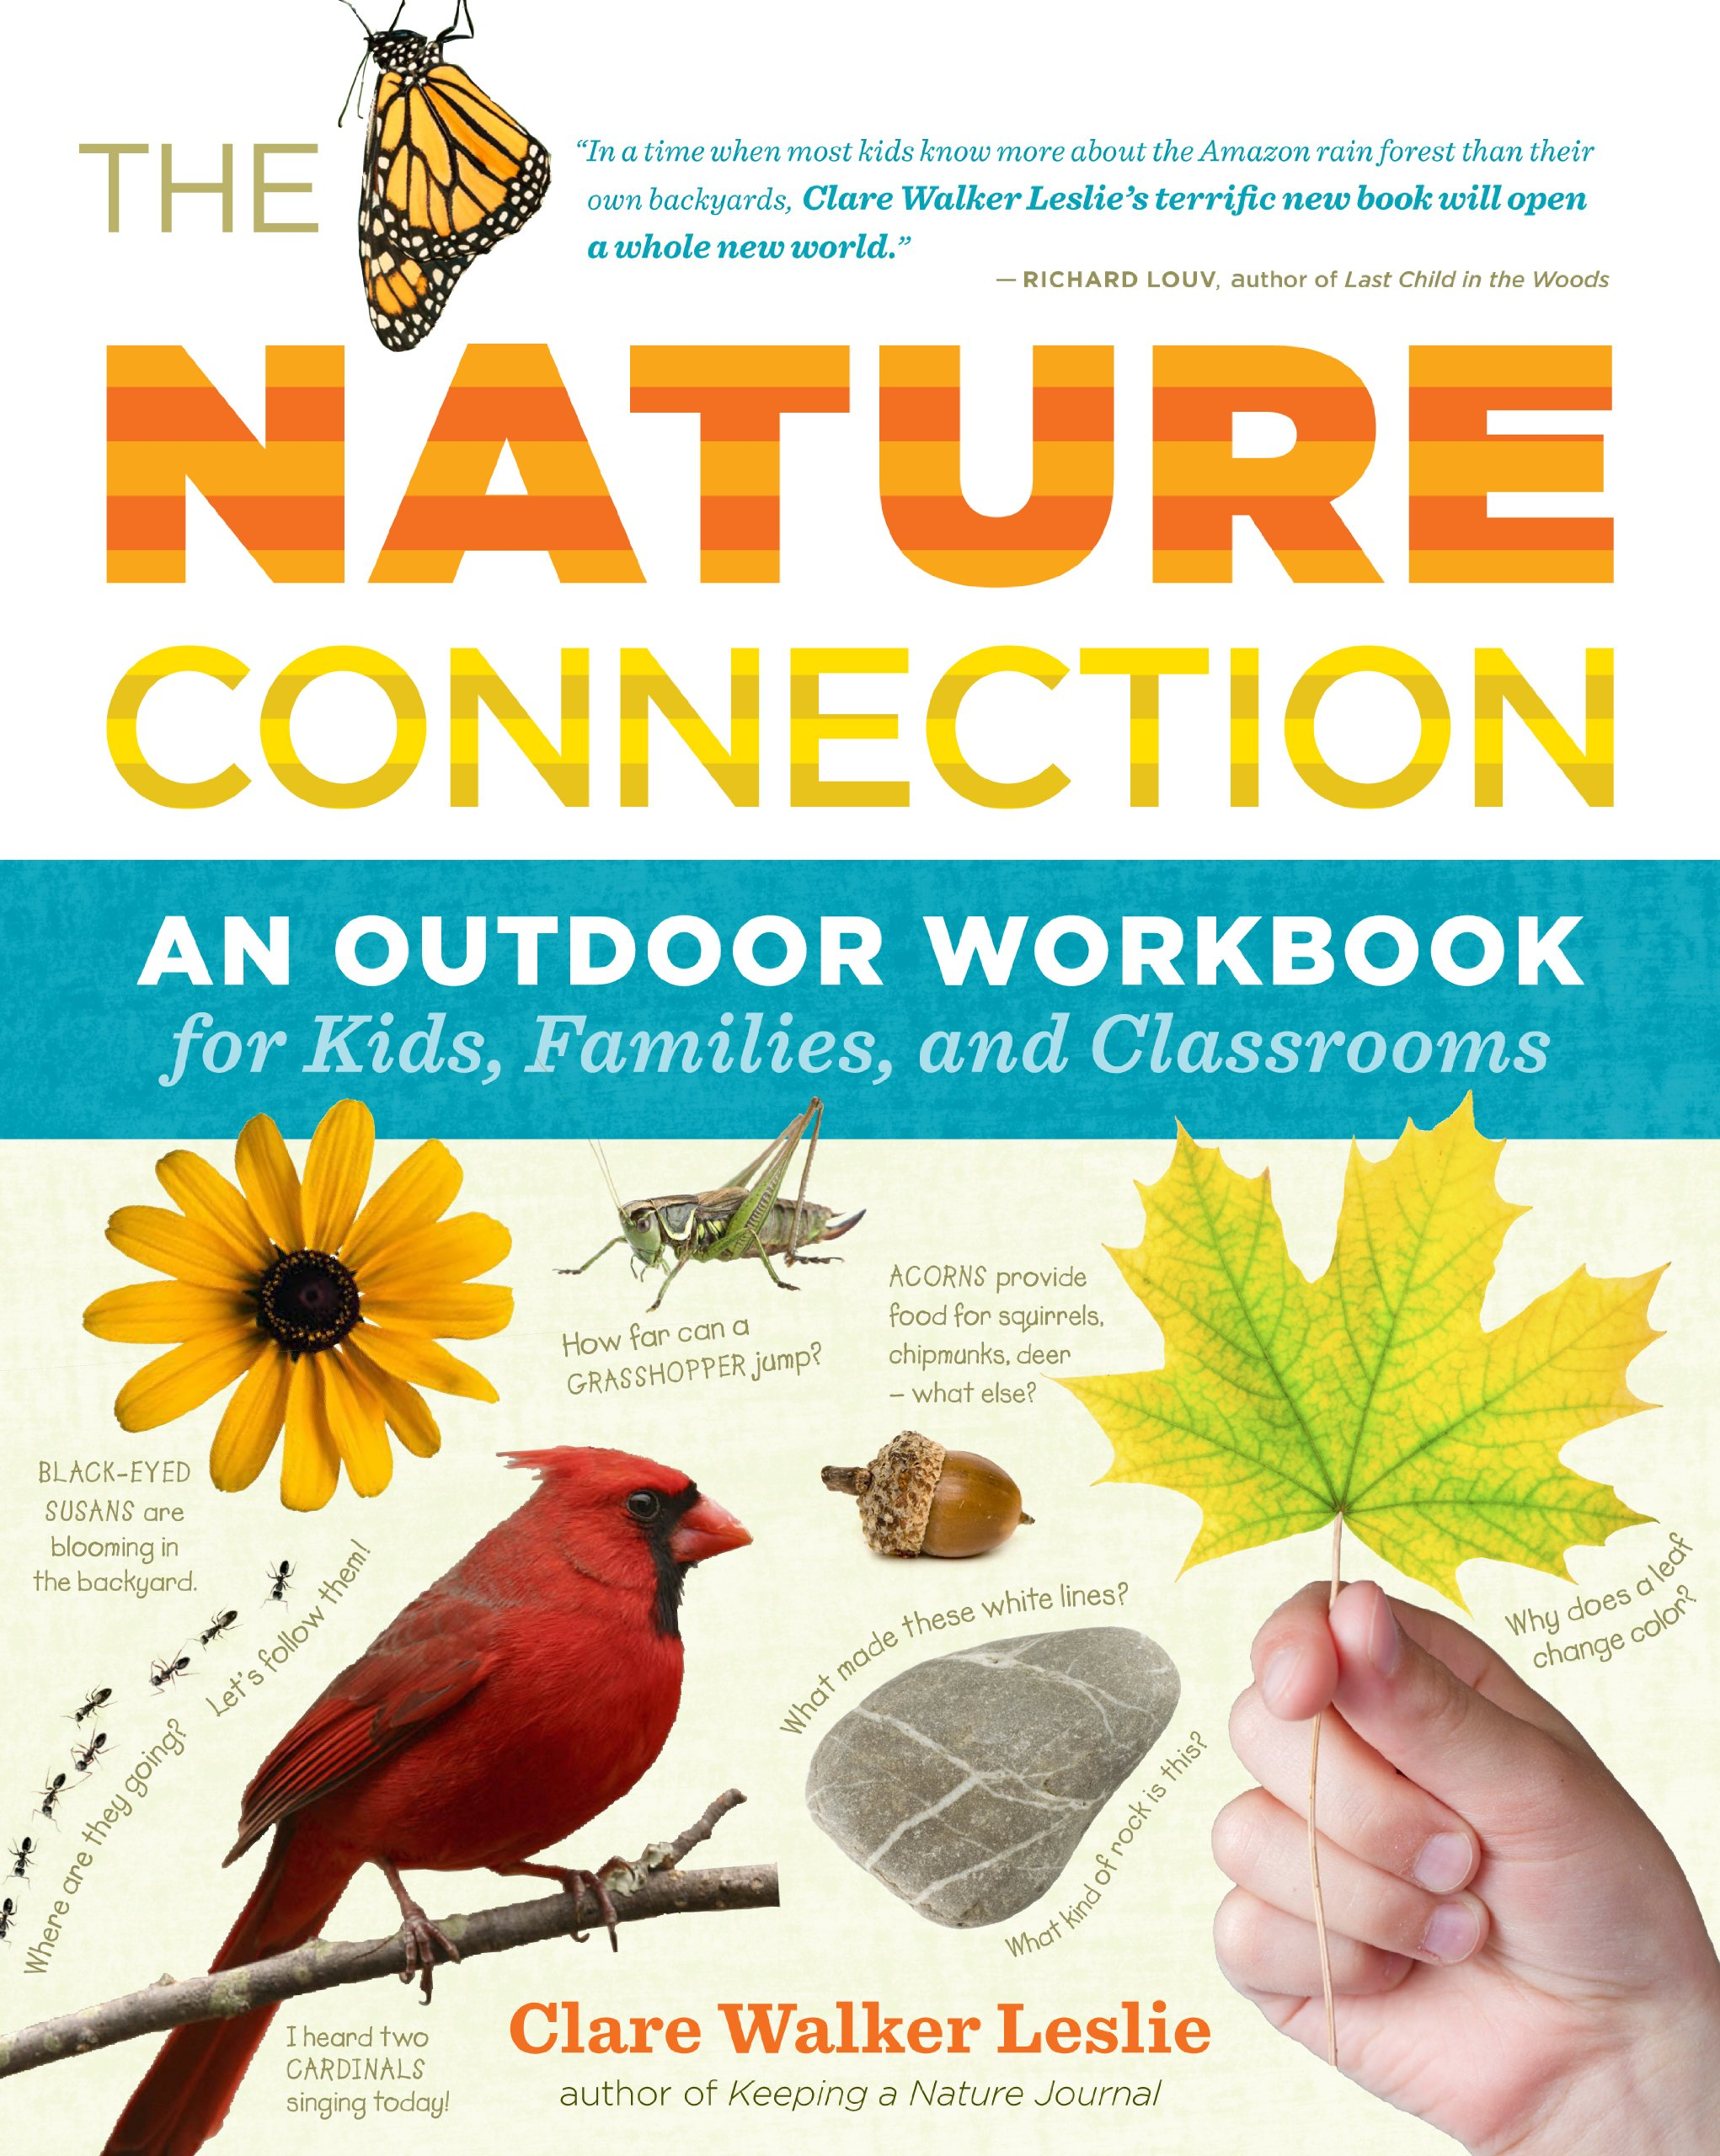 The Nature Connection: An Outdoor Workbook for Kids, Families, and Classrooms pdf